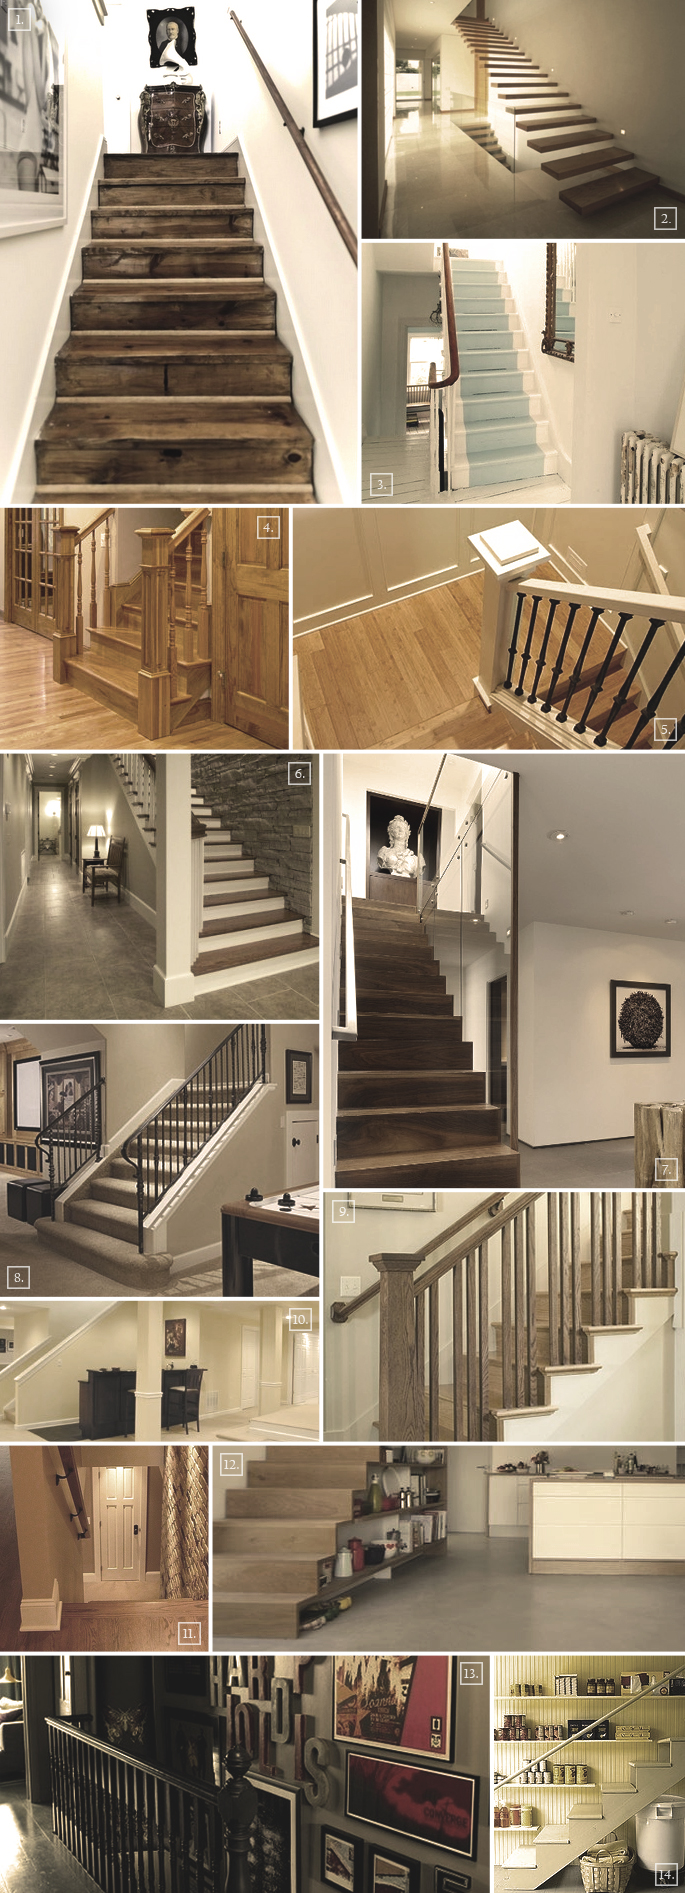 Ideas For a Basement Staircase: Designs, Railings, Storage